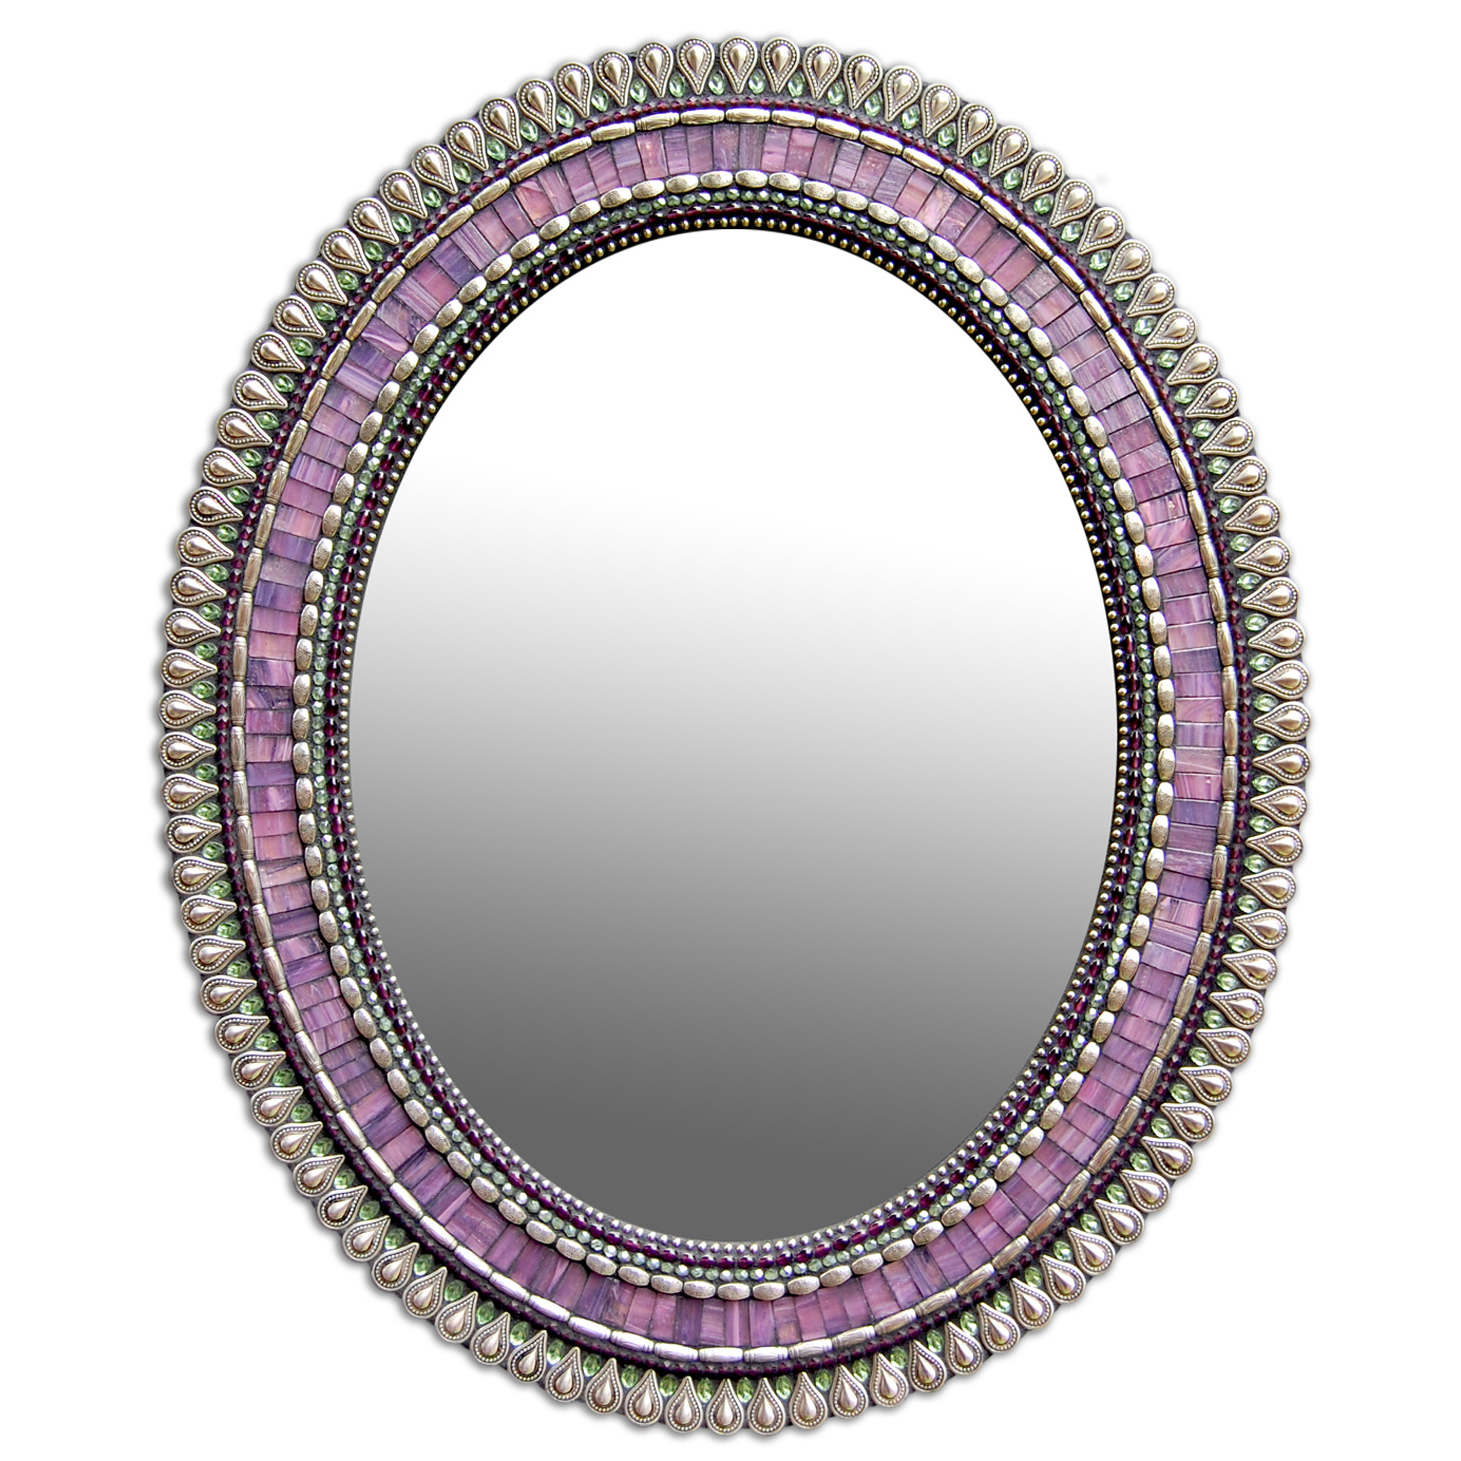 Mosaic Oval Mirror in Purple Drop by Zetamari, Angie Heinrich